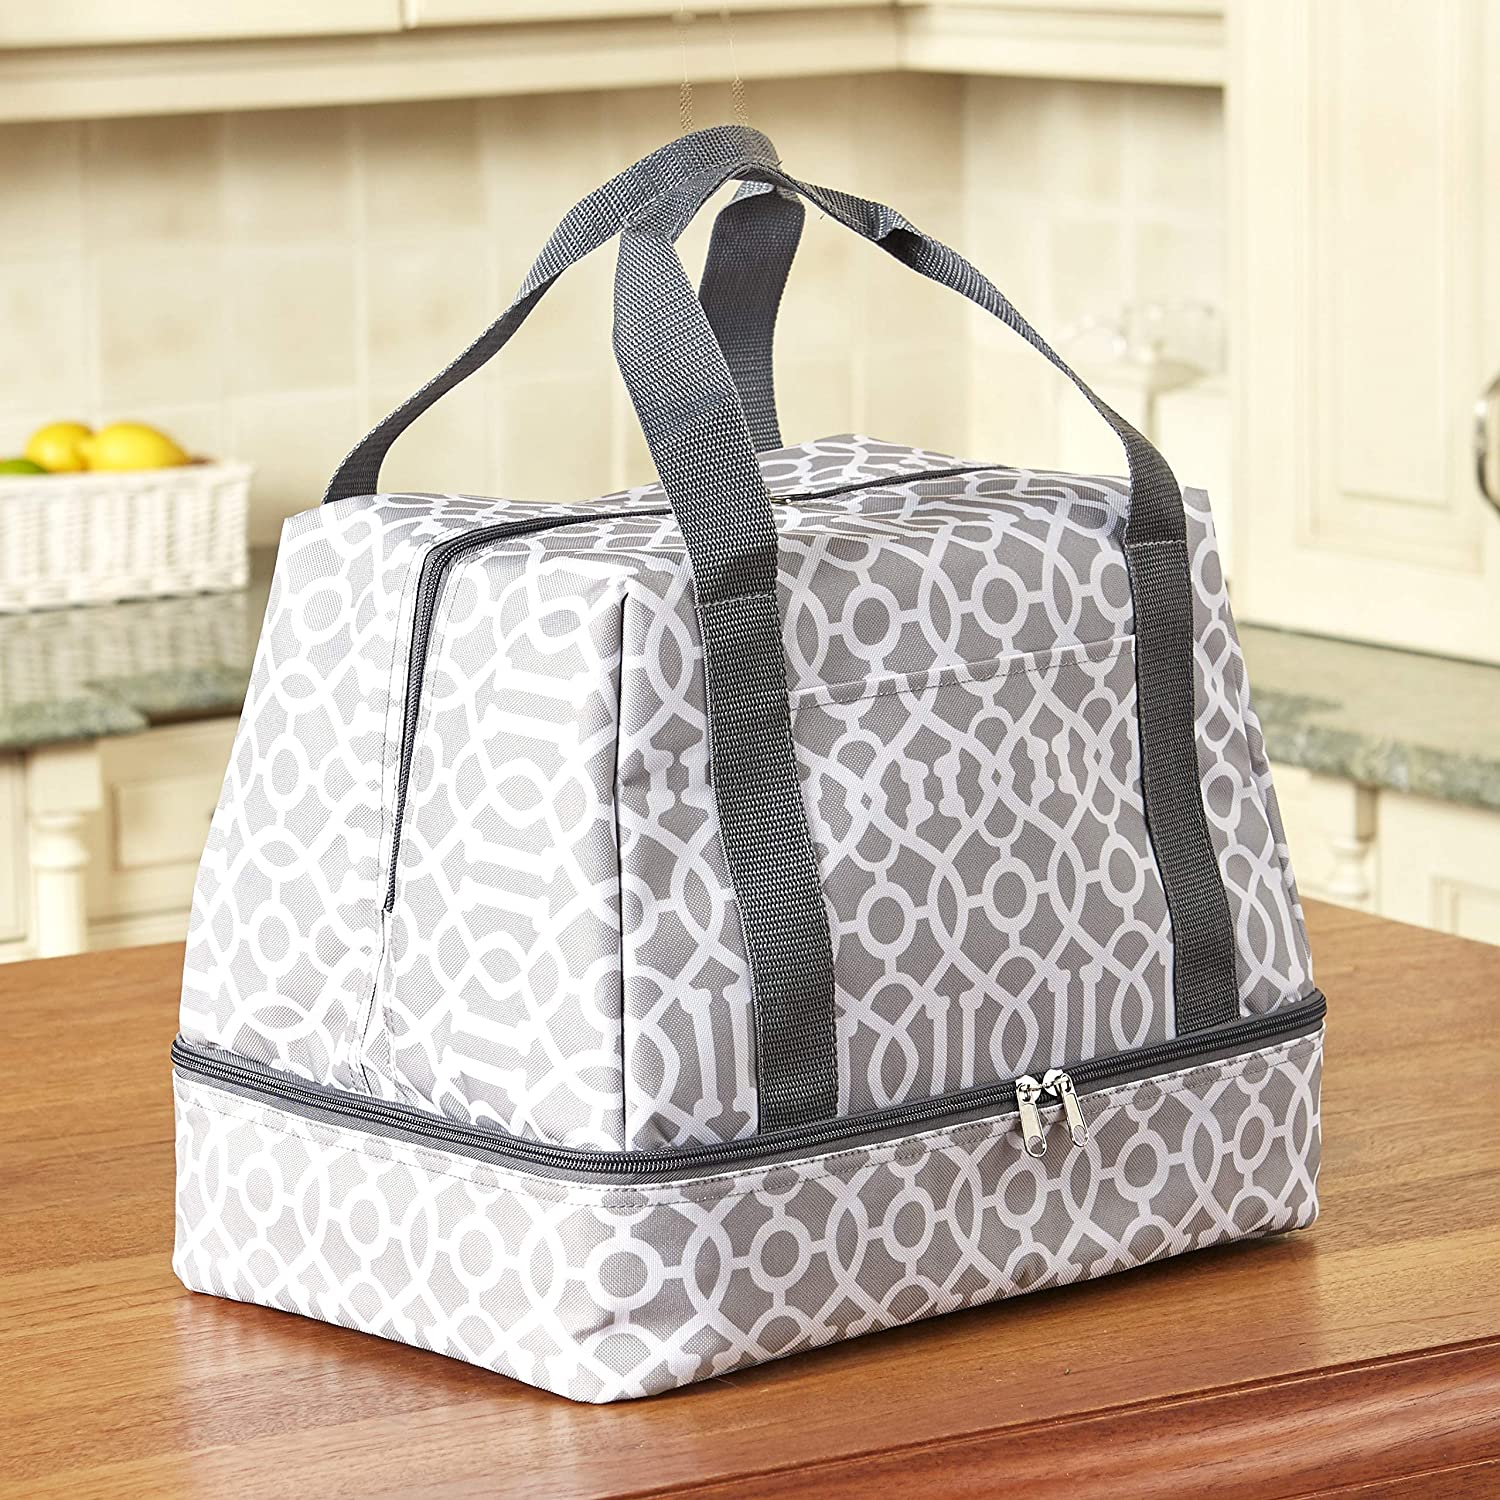 2-In-1 Compartment Slow Cooker and Casserole Carrier Bag - Gray Lattice